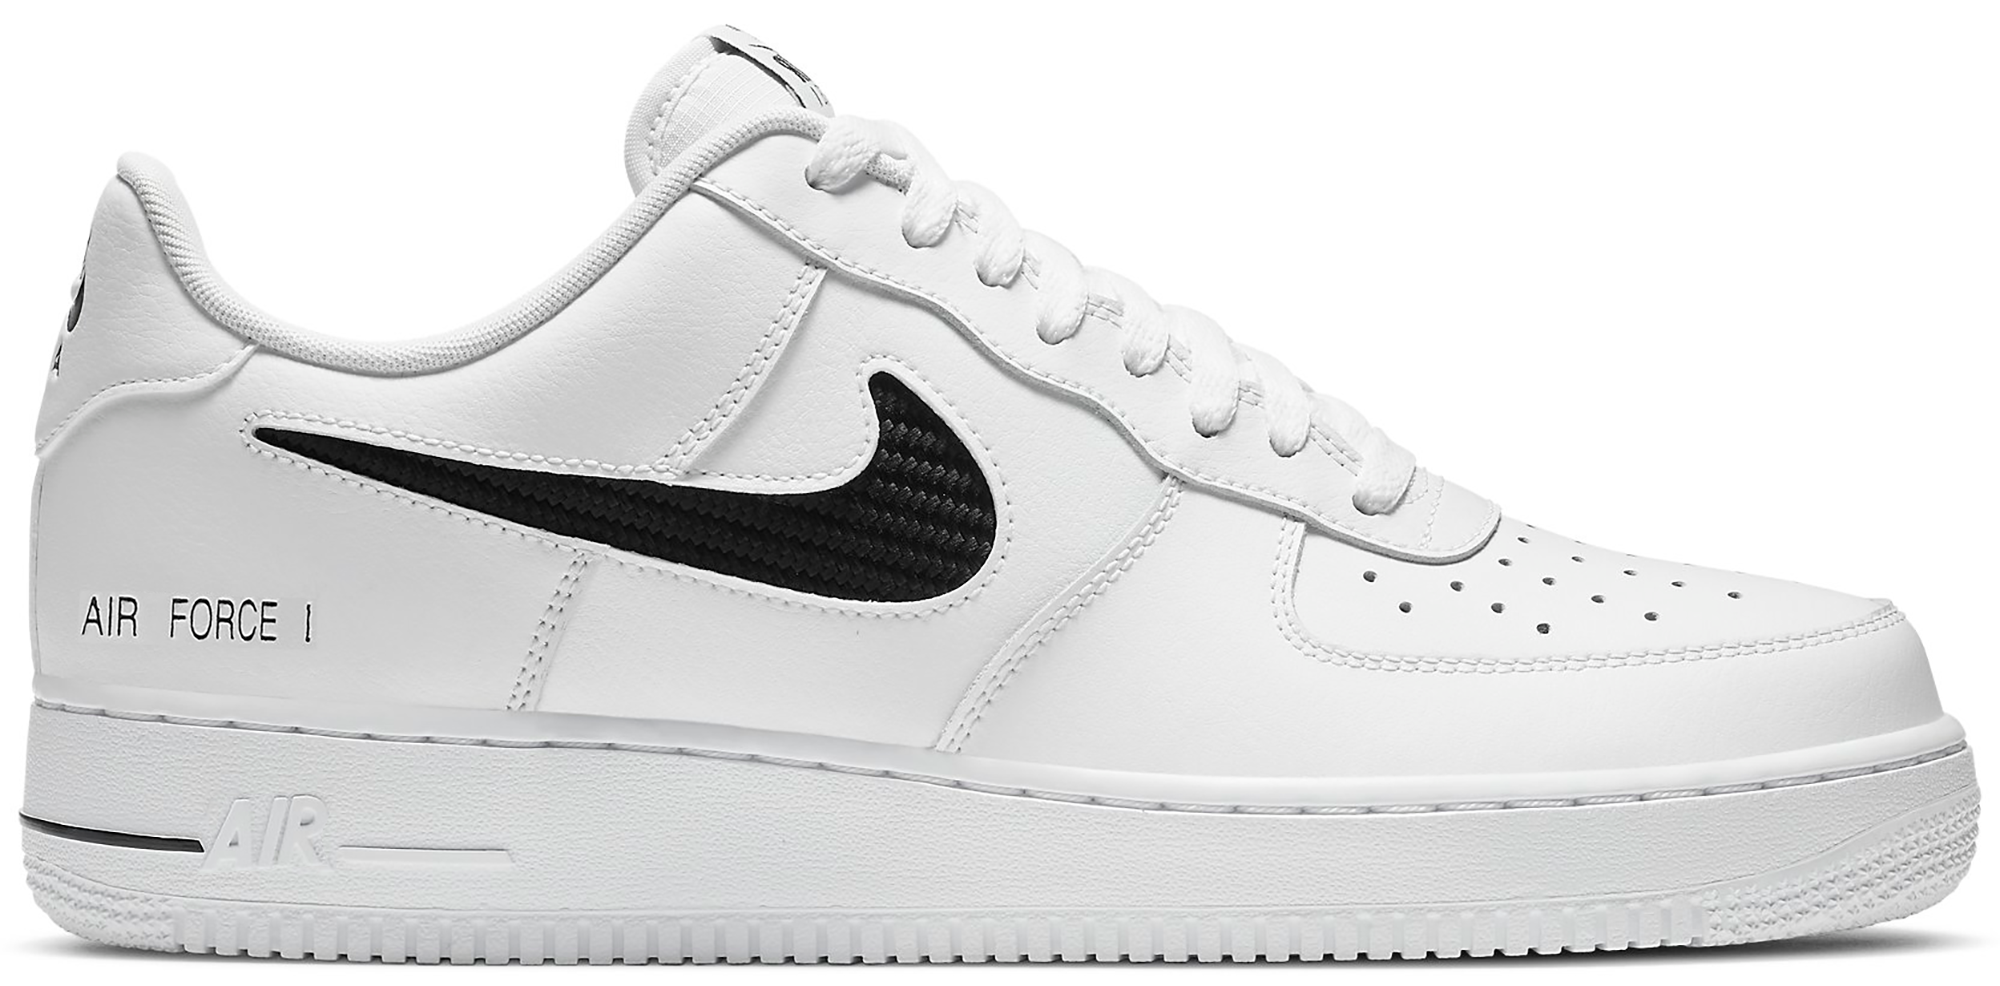 Nike Air Force 1 Low Cut Out Swoosh